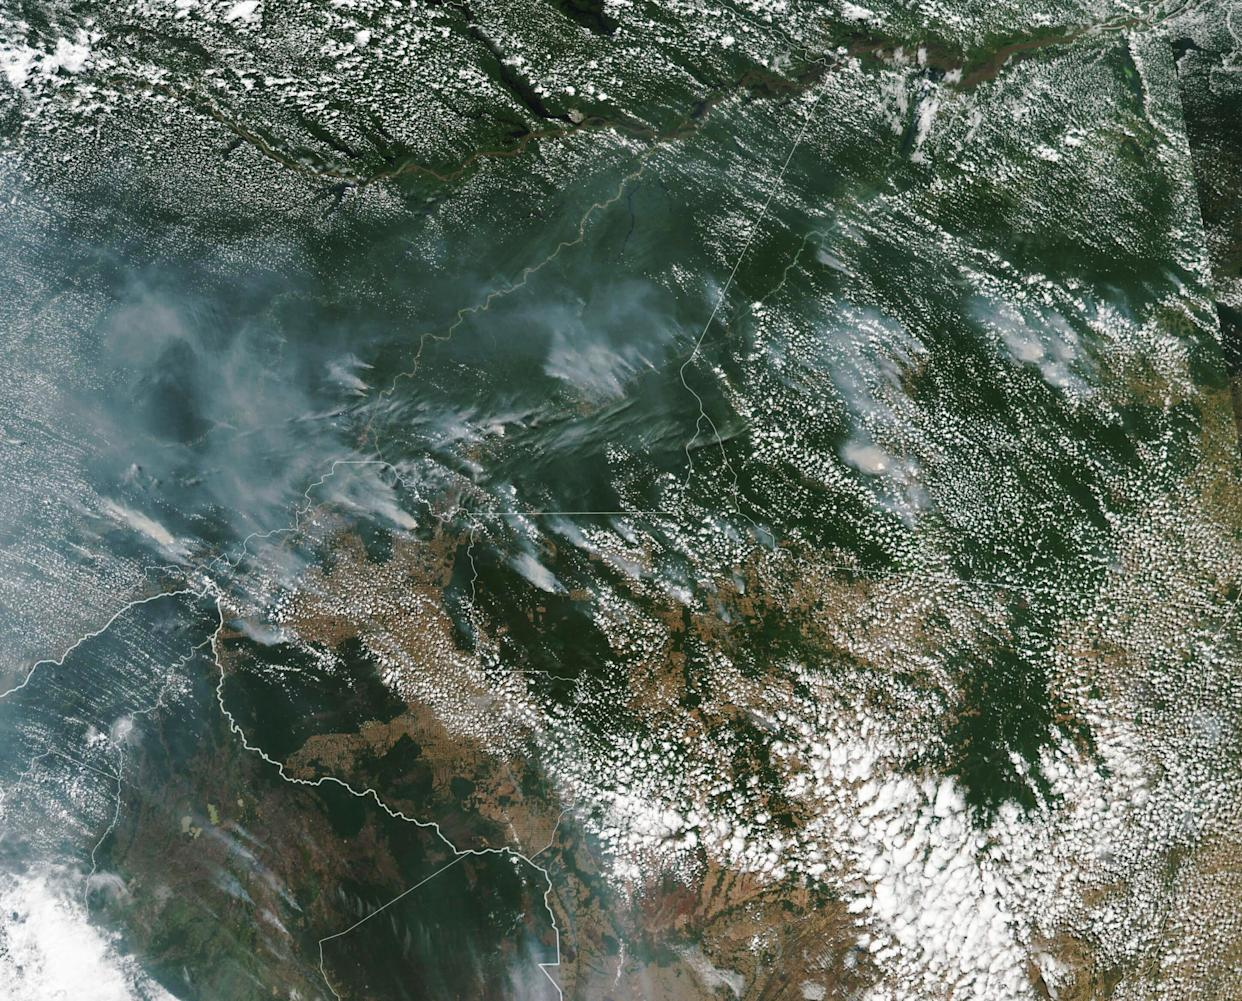 This satellite image provided by NASA on Aug. 13 shows several fires burning in the Brazilian Amazon forest. Brazil's National Institute for Space Research said the country has seen a record number of wildfires this year, counting 74,155 as of Tuesday. (Photo: NASA via ASSOCIATED PRESS)